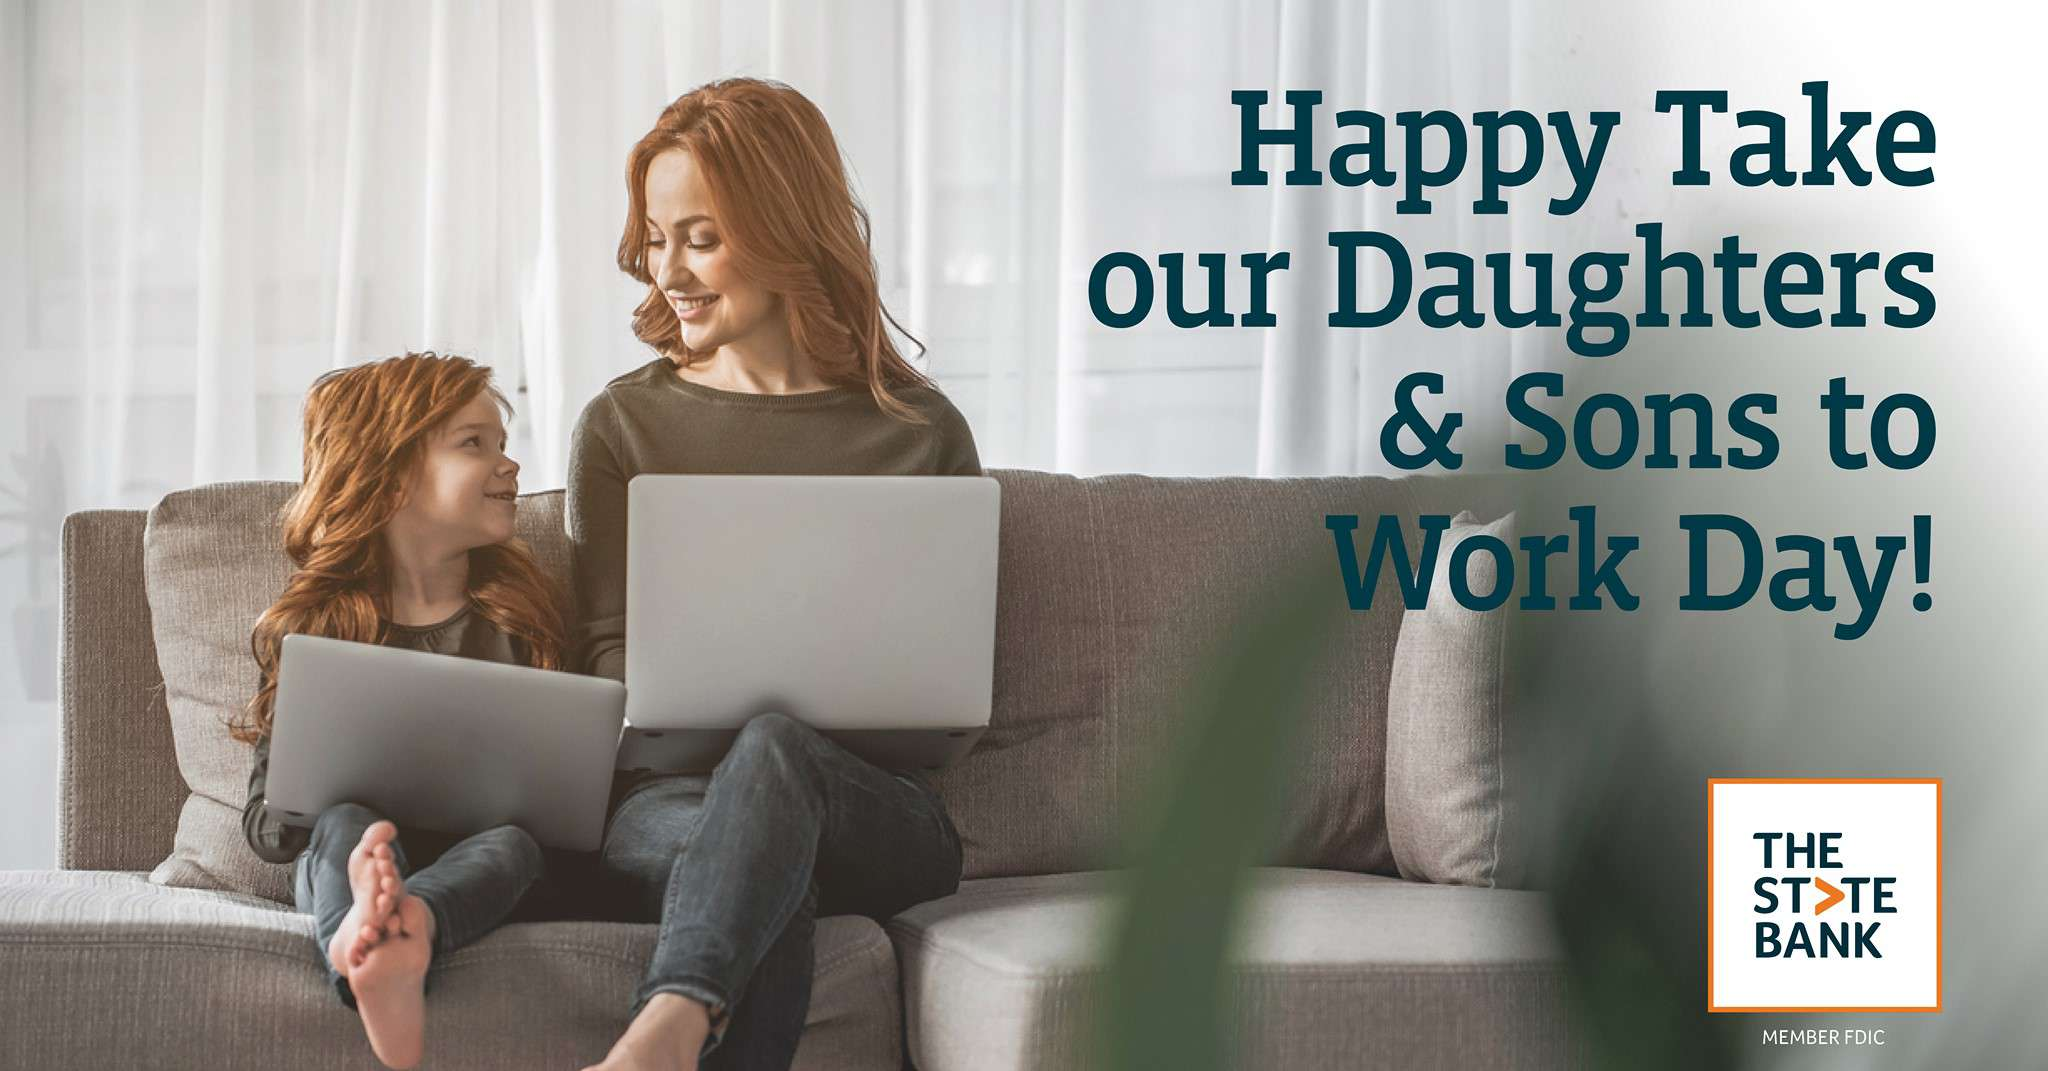 Take Our Daughters and Sons to Work Day Wishes Unique Image